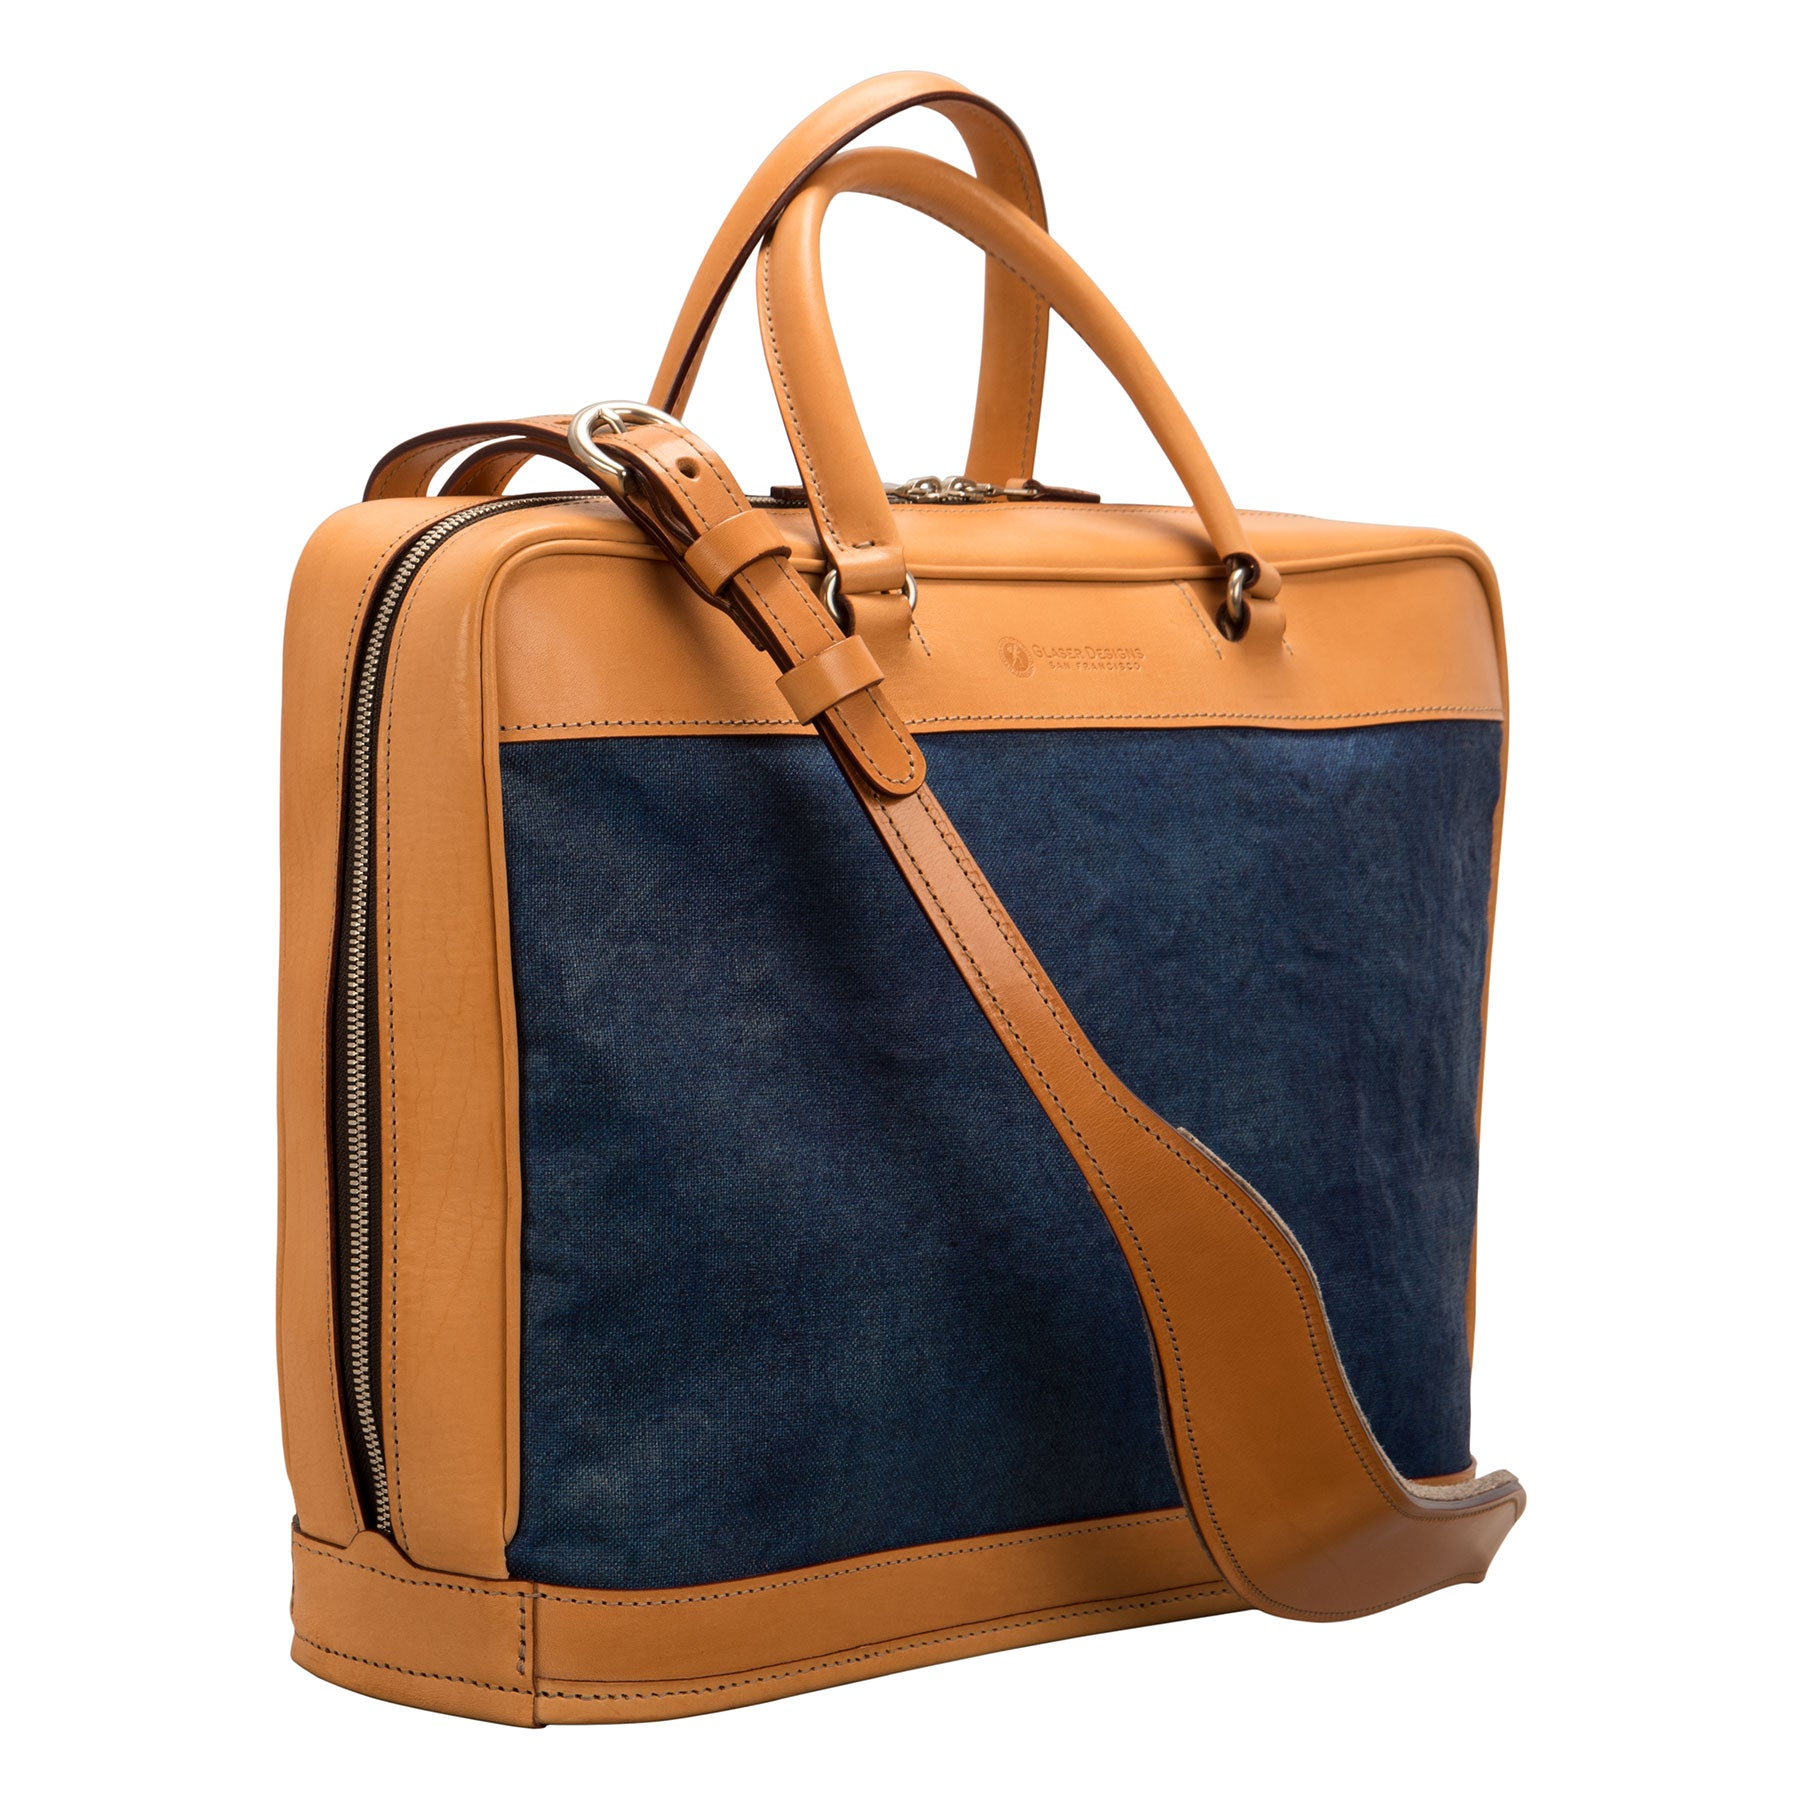 *Platform Portfolio: Hand-Painted Linen and Hand-Burnished Leather